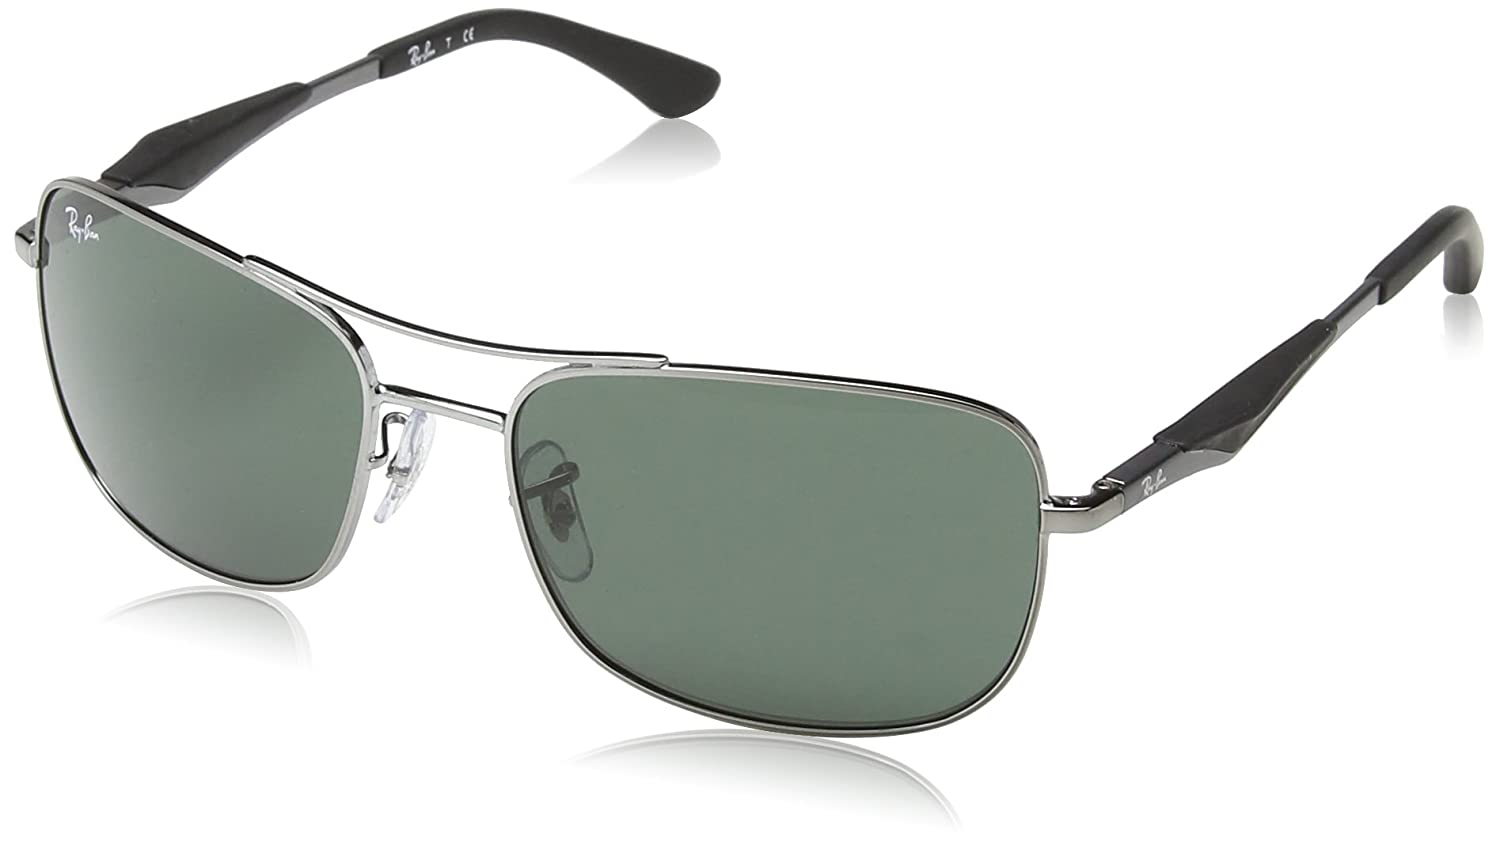 TALLA 61 mm. Ray-Ban Sonnenbrille (RB 3515)